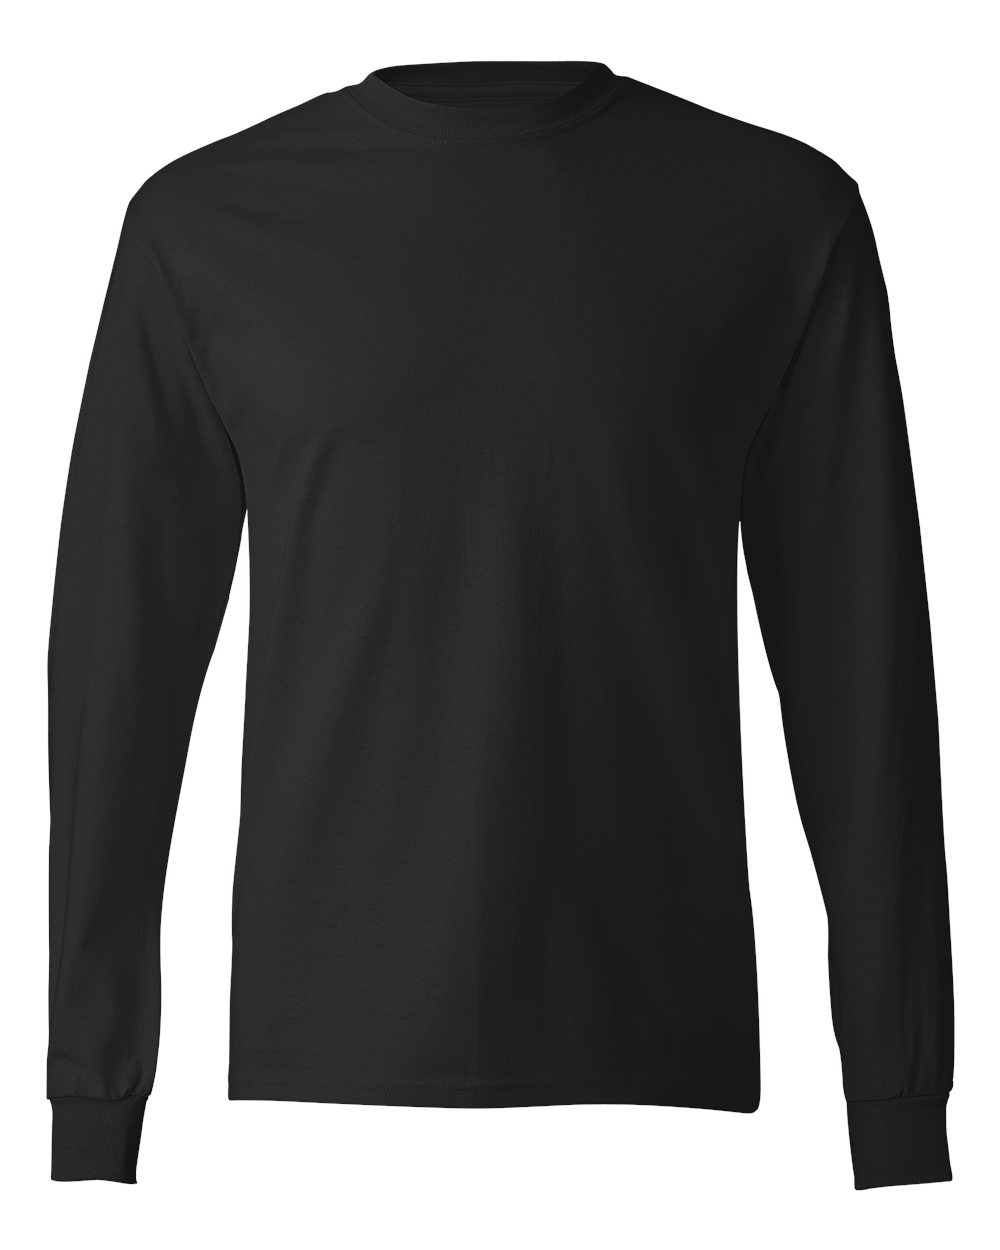 Long sleeve shirt clipart clipart suggest for Long sleeve black tee shirts